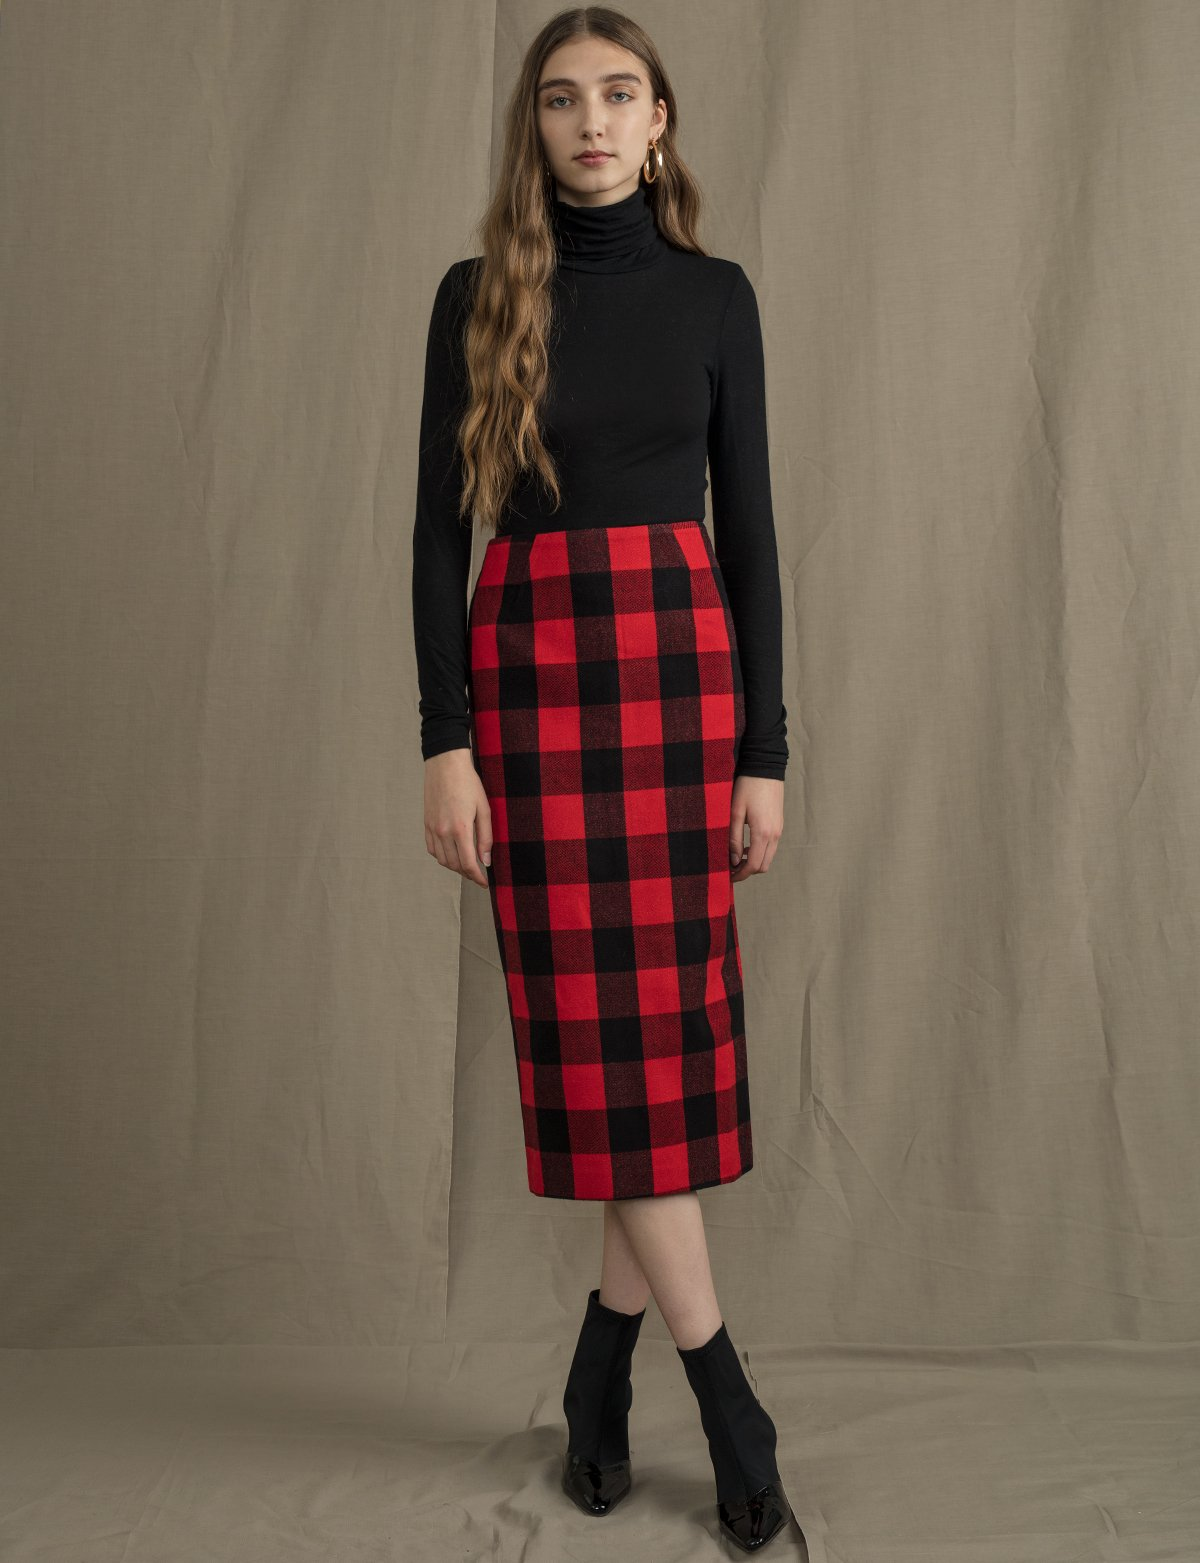 Red Plaid Pencil Skirt, $92